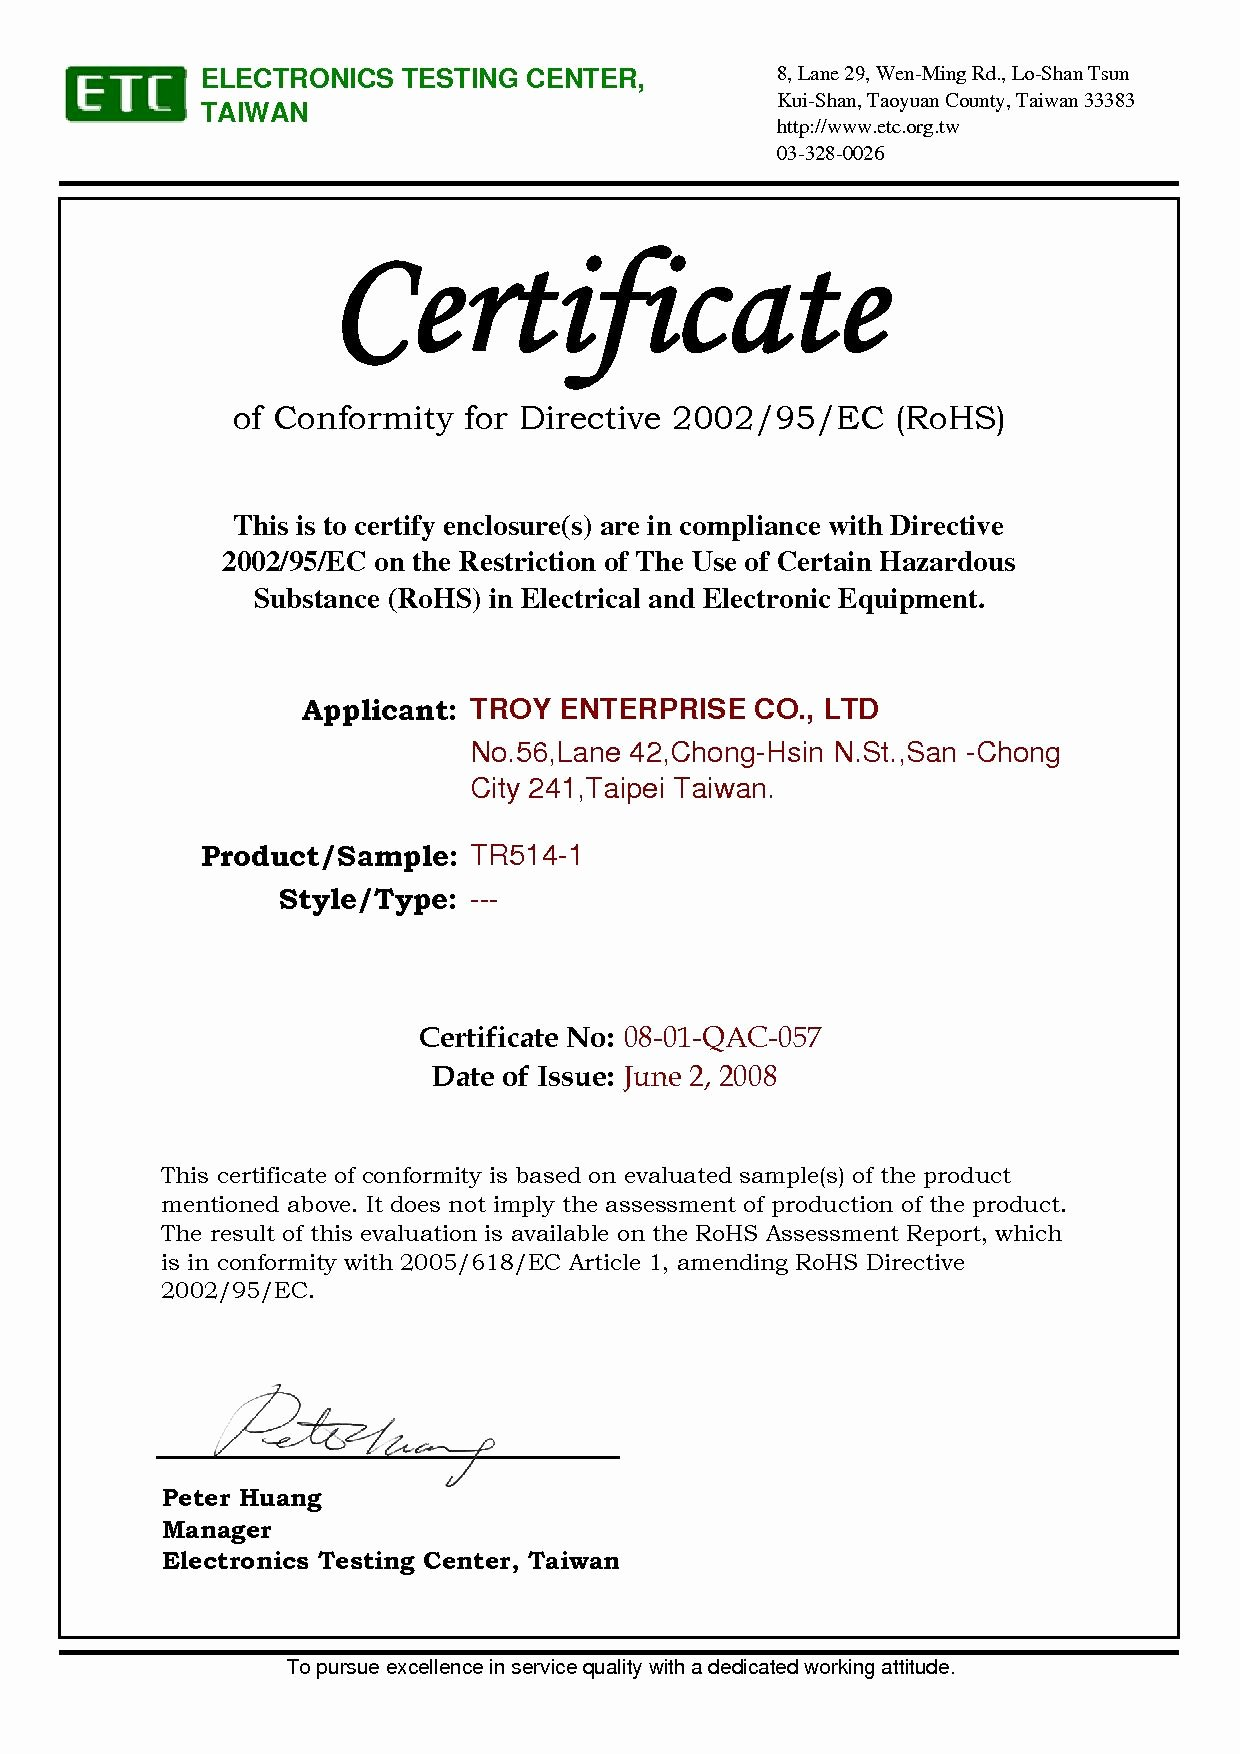 Certificate Of Compliance Template Awesome Certificate Rohs Electronics Testing Center Tr514 1